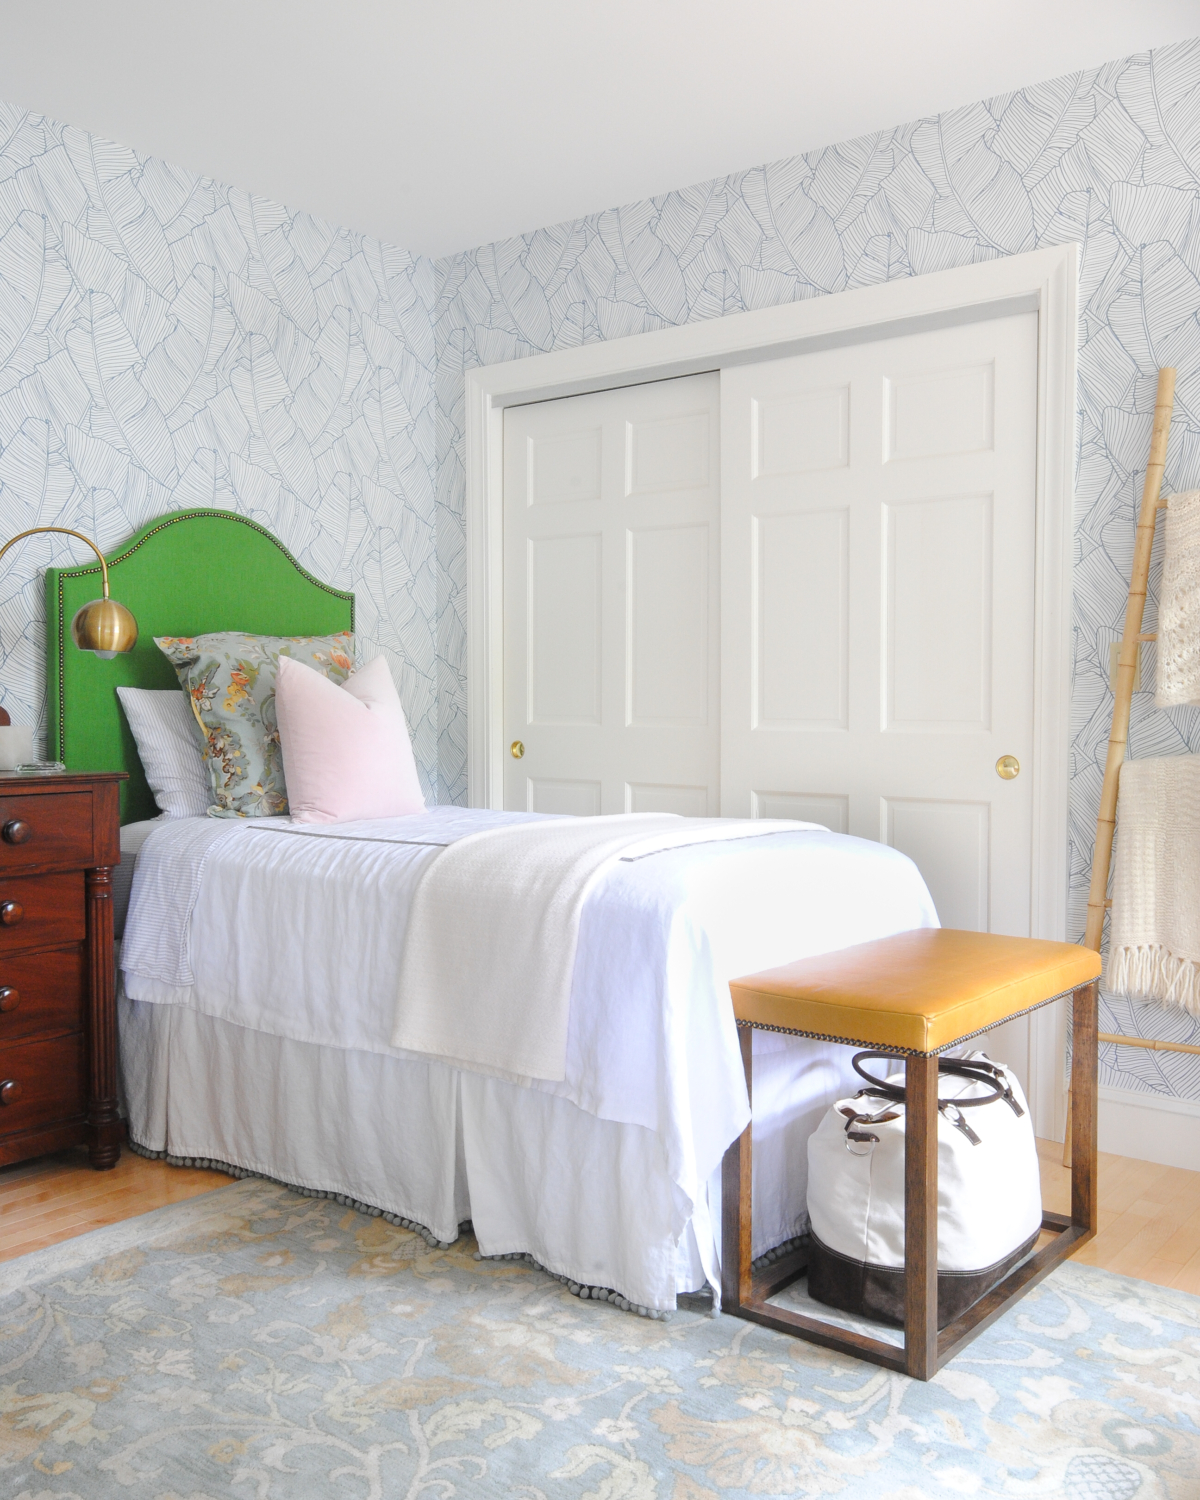 DIY Bedroom Bench with Leather Upholstery - The Chronicles of Home